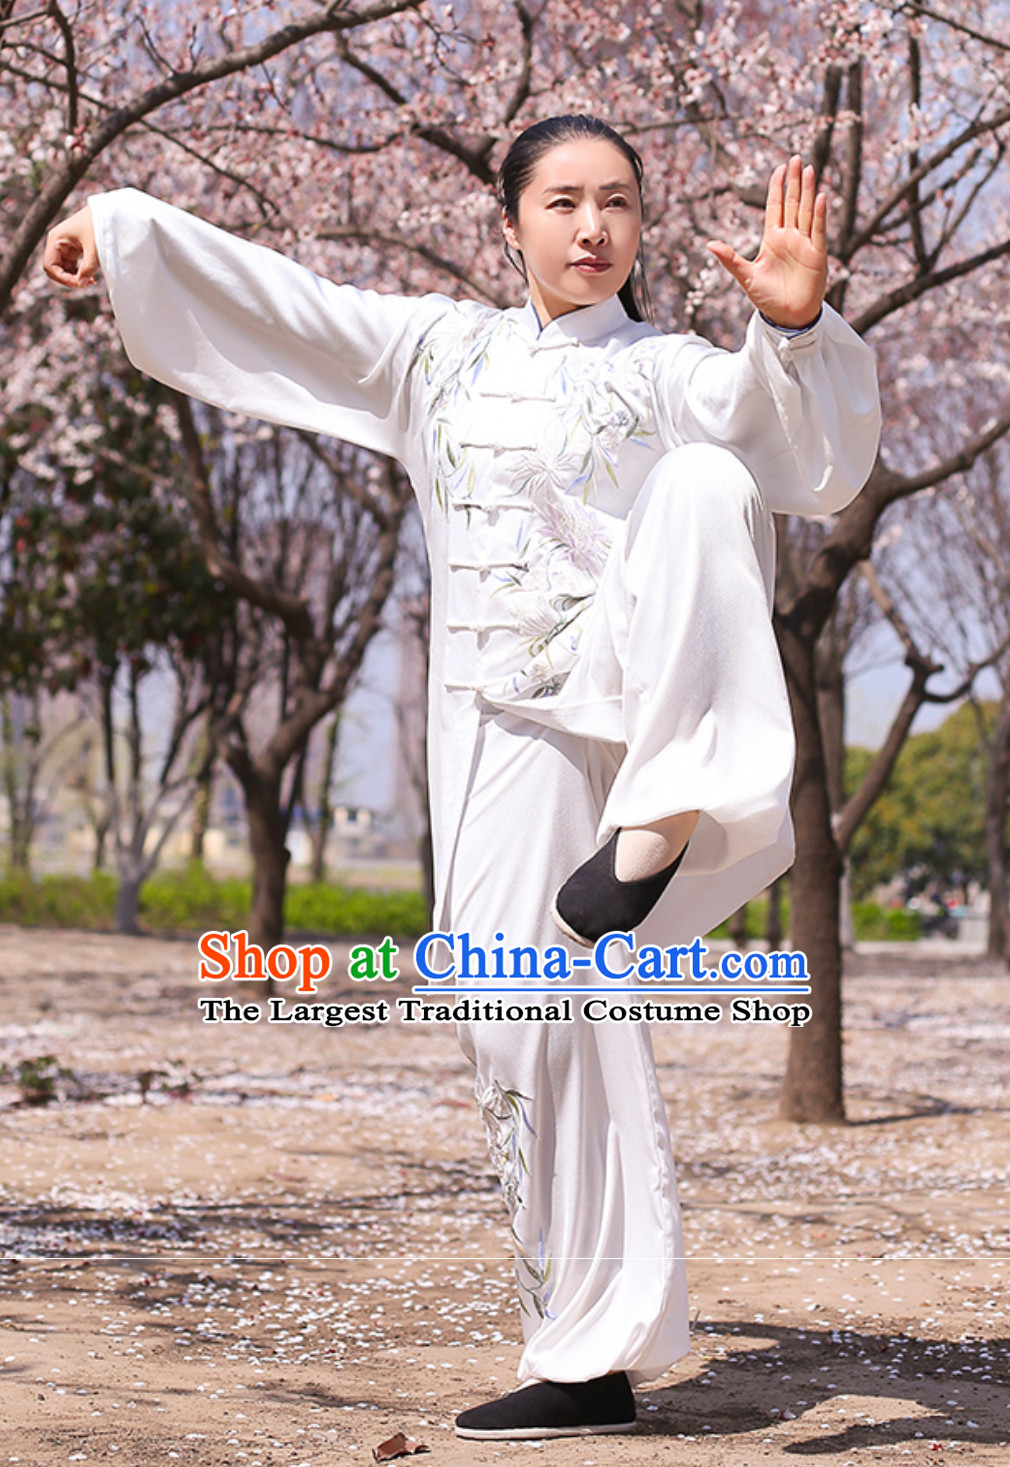 Top Chinese Traditional Competition Championship Tai Chi Taiji Kung Fu Wing Chun Kungfu Tai Ji Gong Fu Master Suit Clothes Complete Set